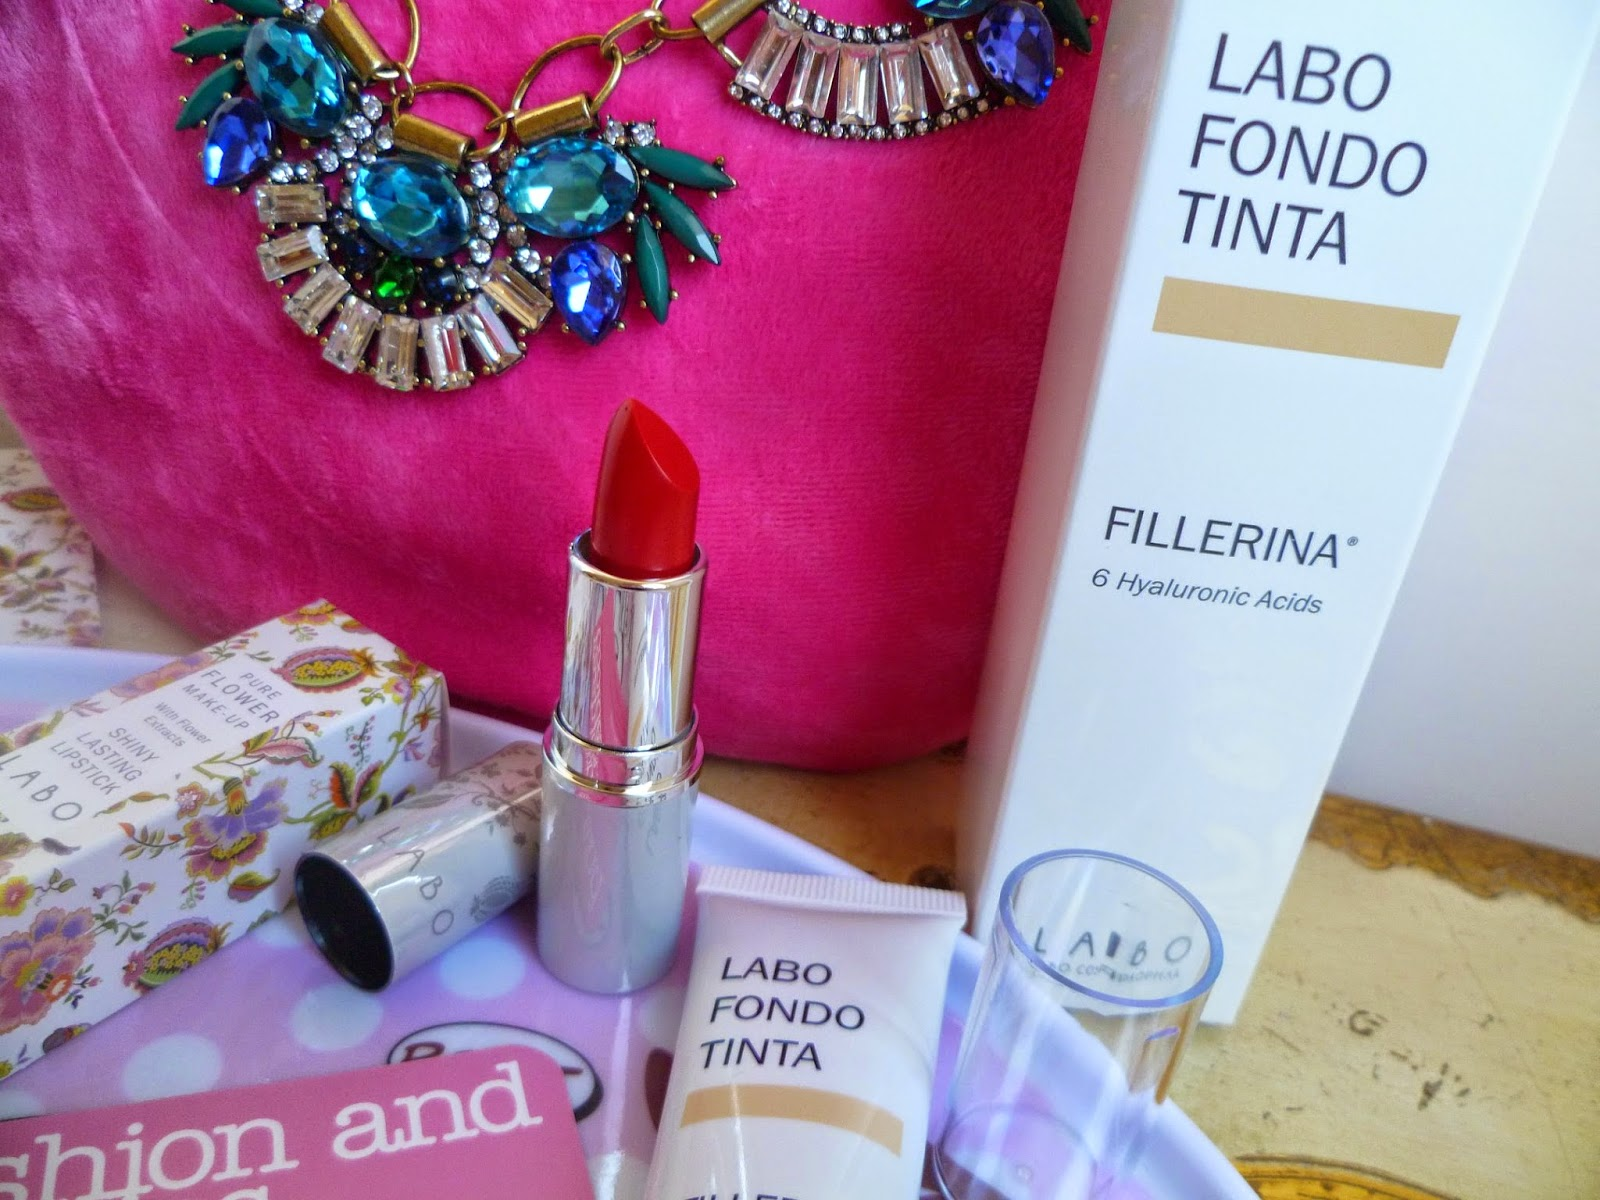 Labo make-up, Labo fillerina, real anti age foundation, Labo fillerina fondotinta, Fashion and Cookies, fashion blogger, fillerina review